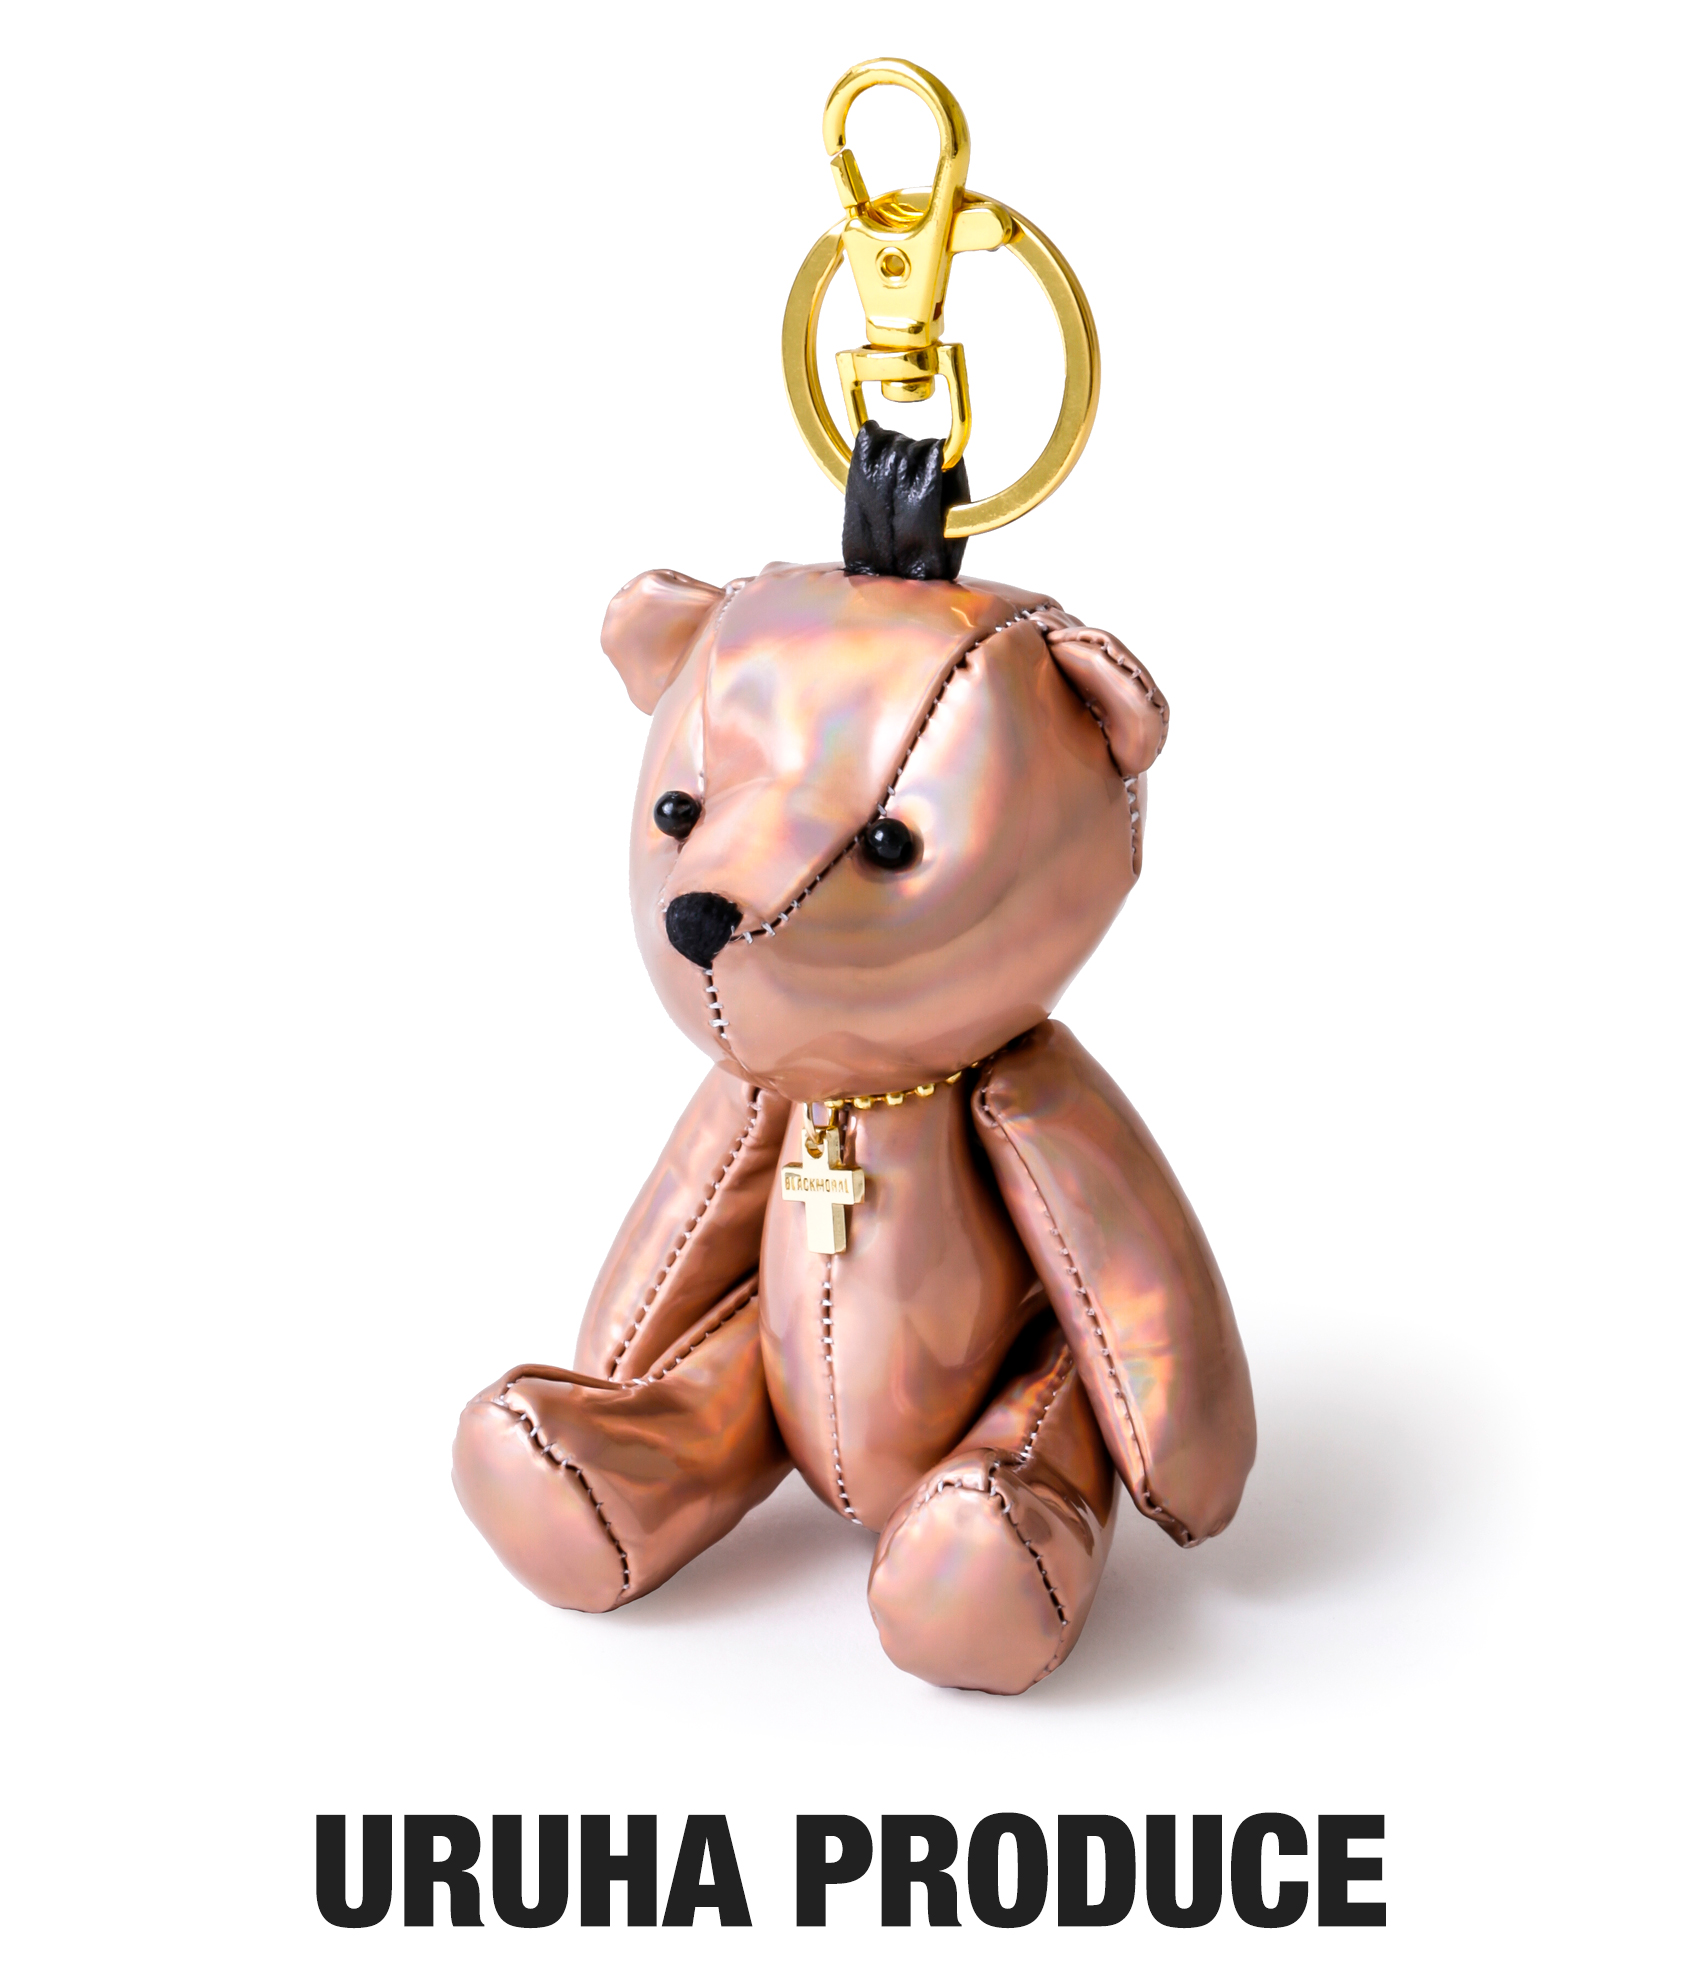 BEAR KEY RING (URUHA PRODUCE)